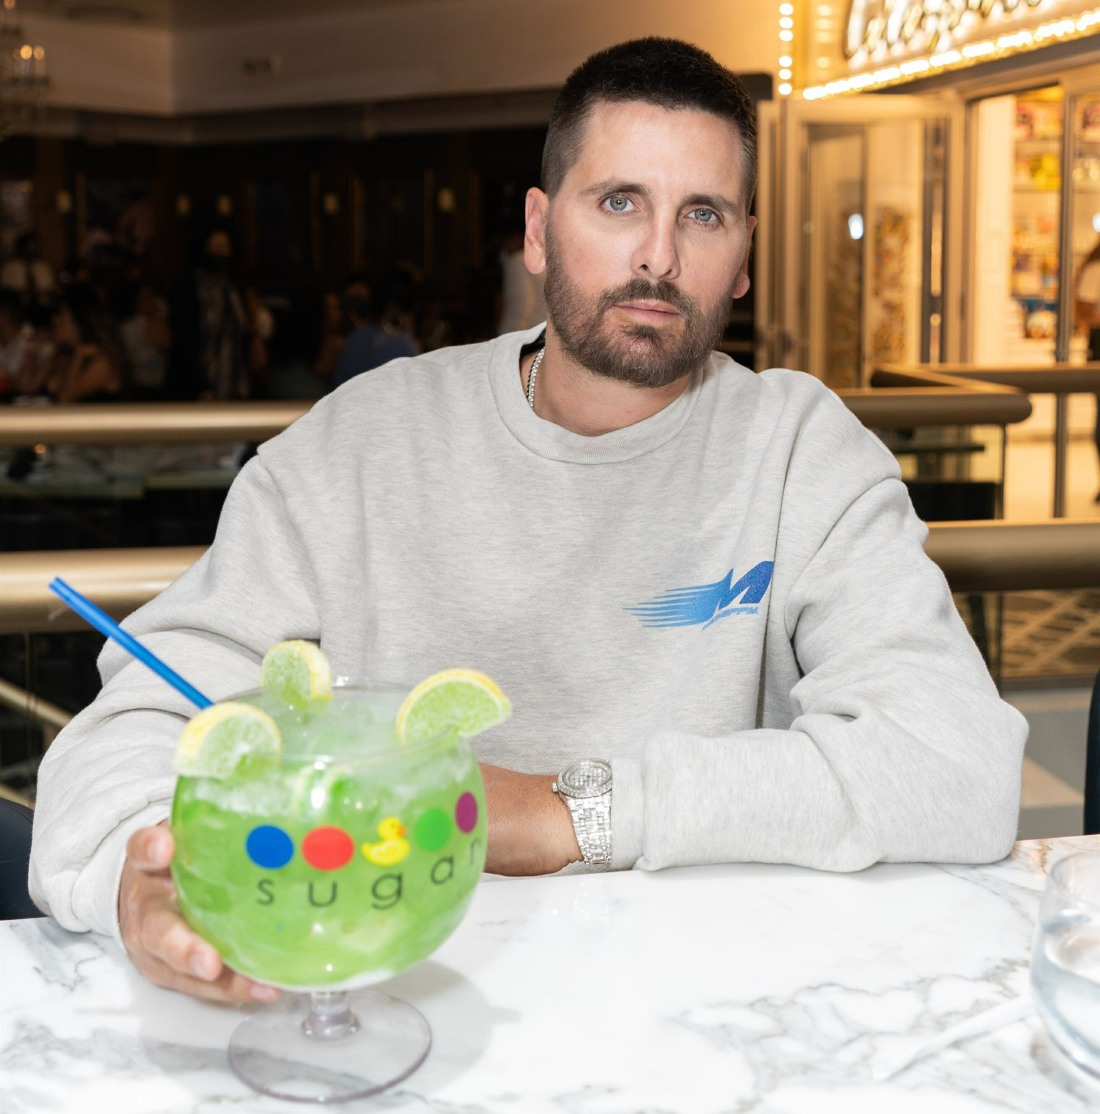 Scott Disick and Mario Lopez at The Grand Opening of the Sugar Factory at Harmon Corner in Las Vegas